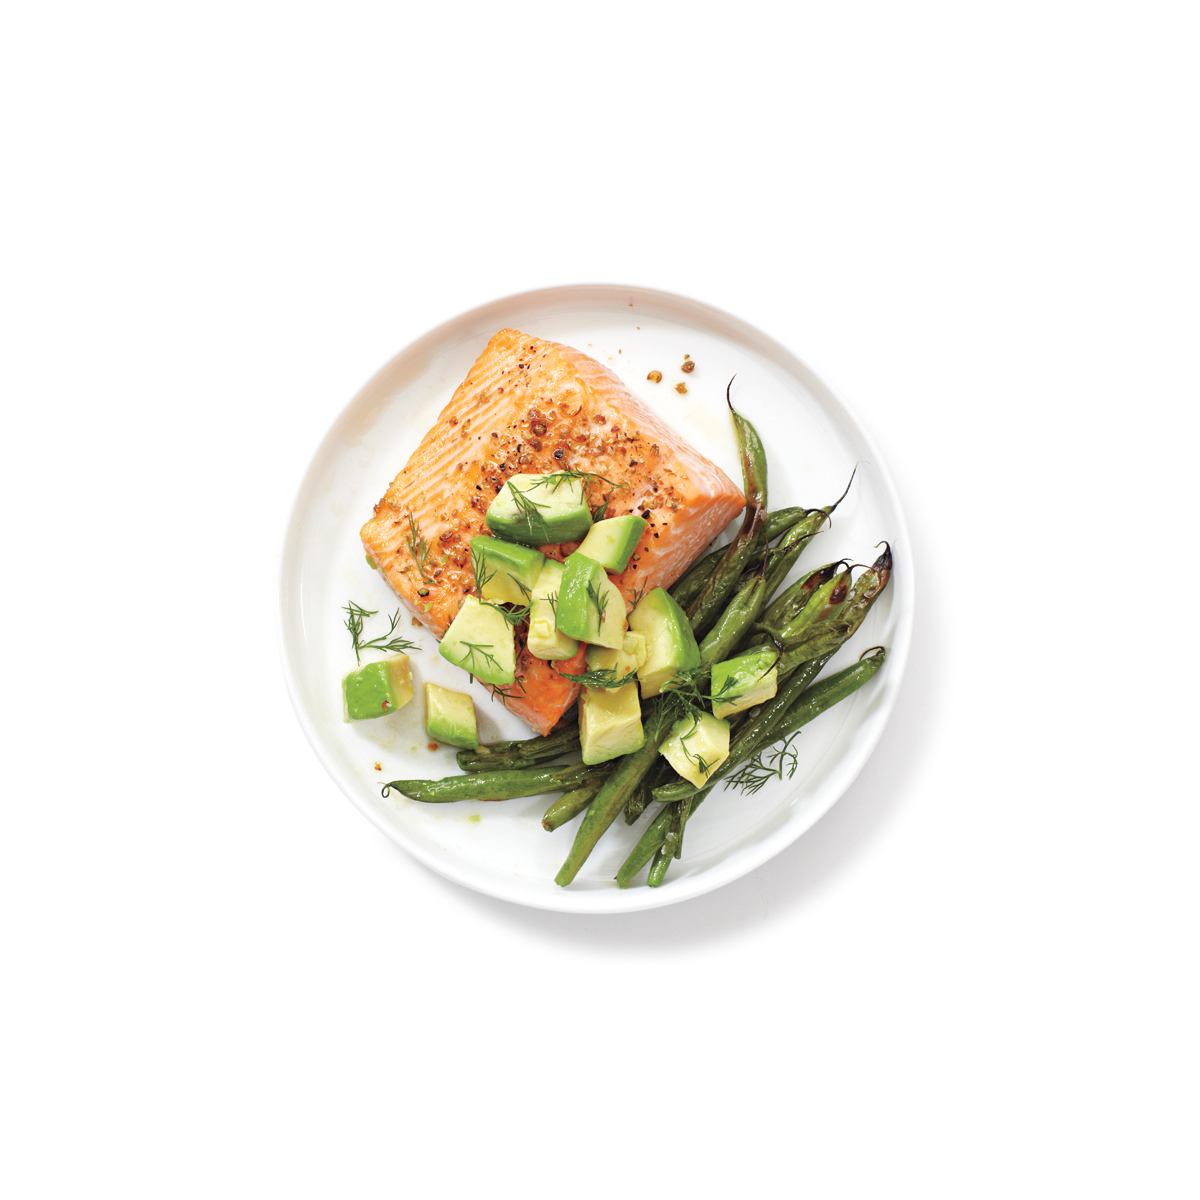 Salmon, Green Beans, and Avocado